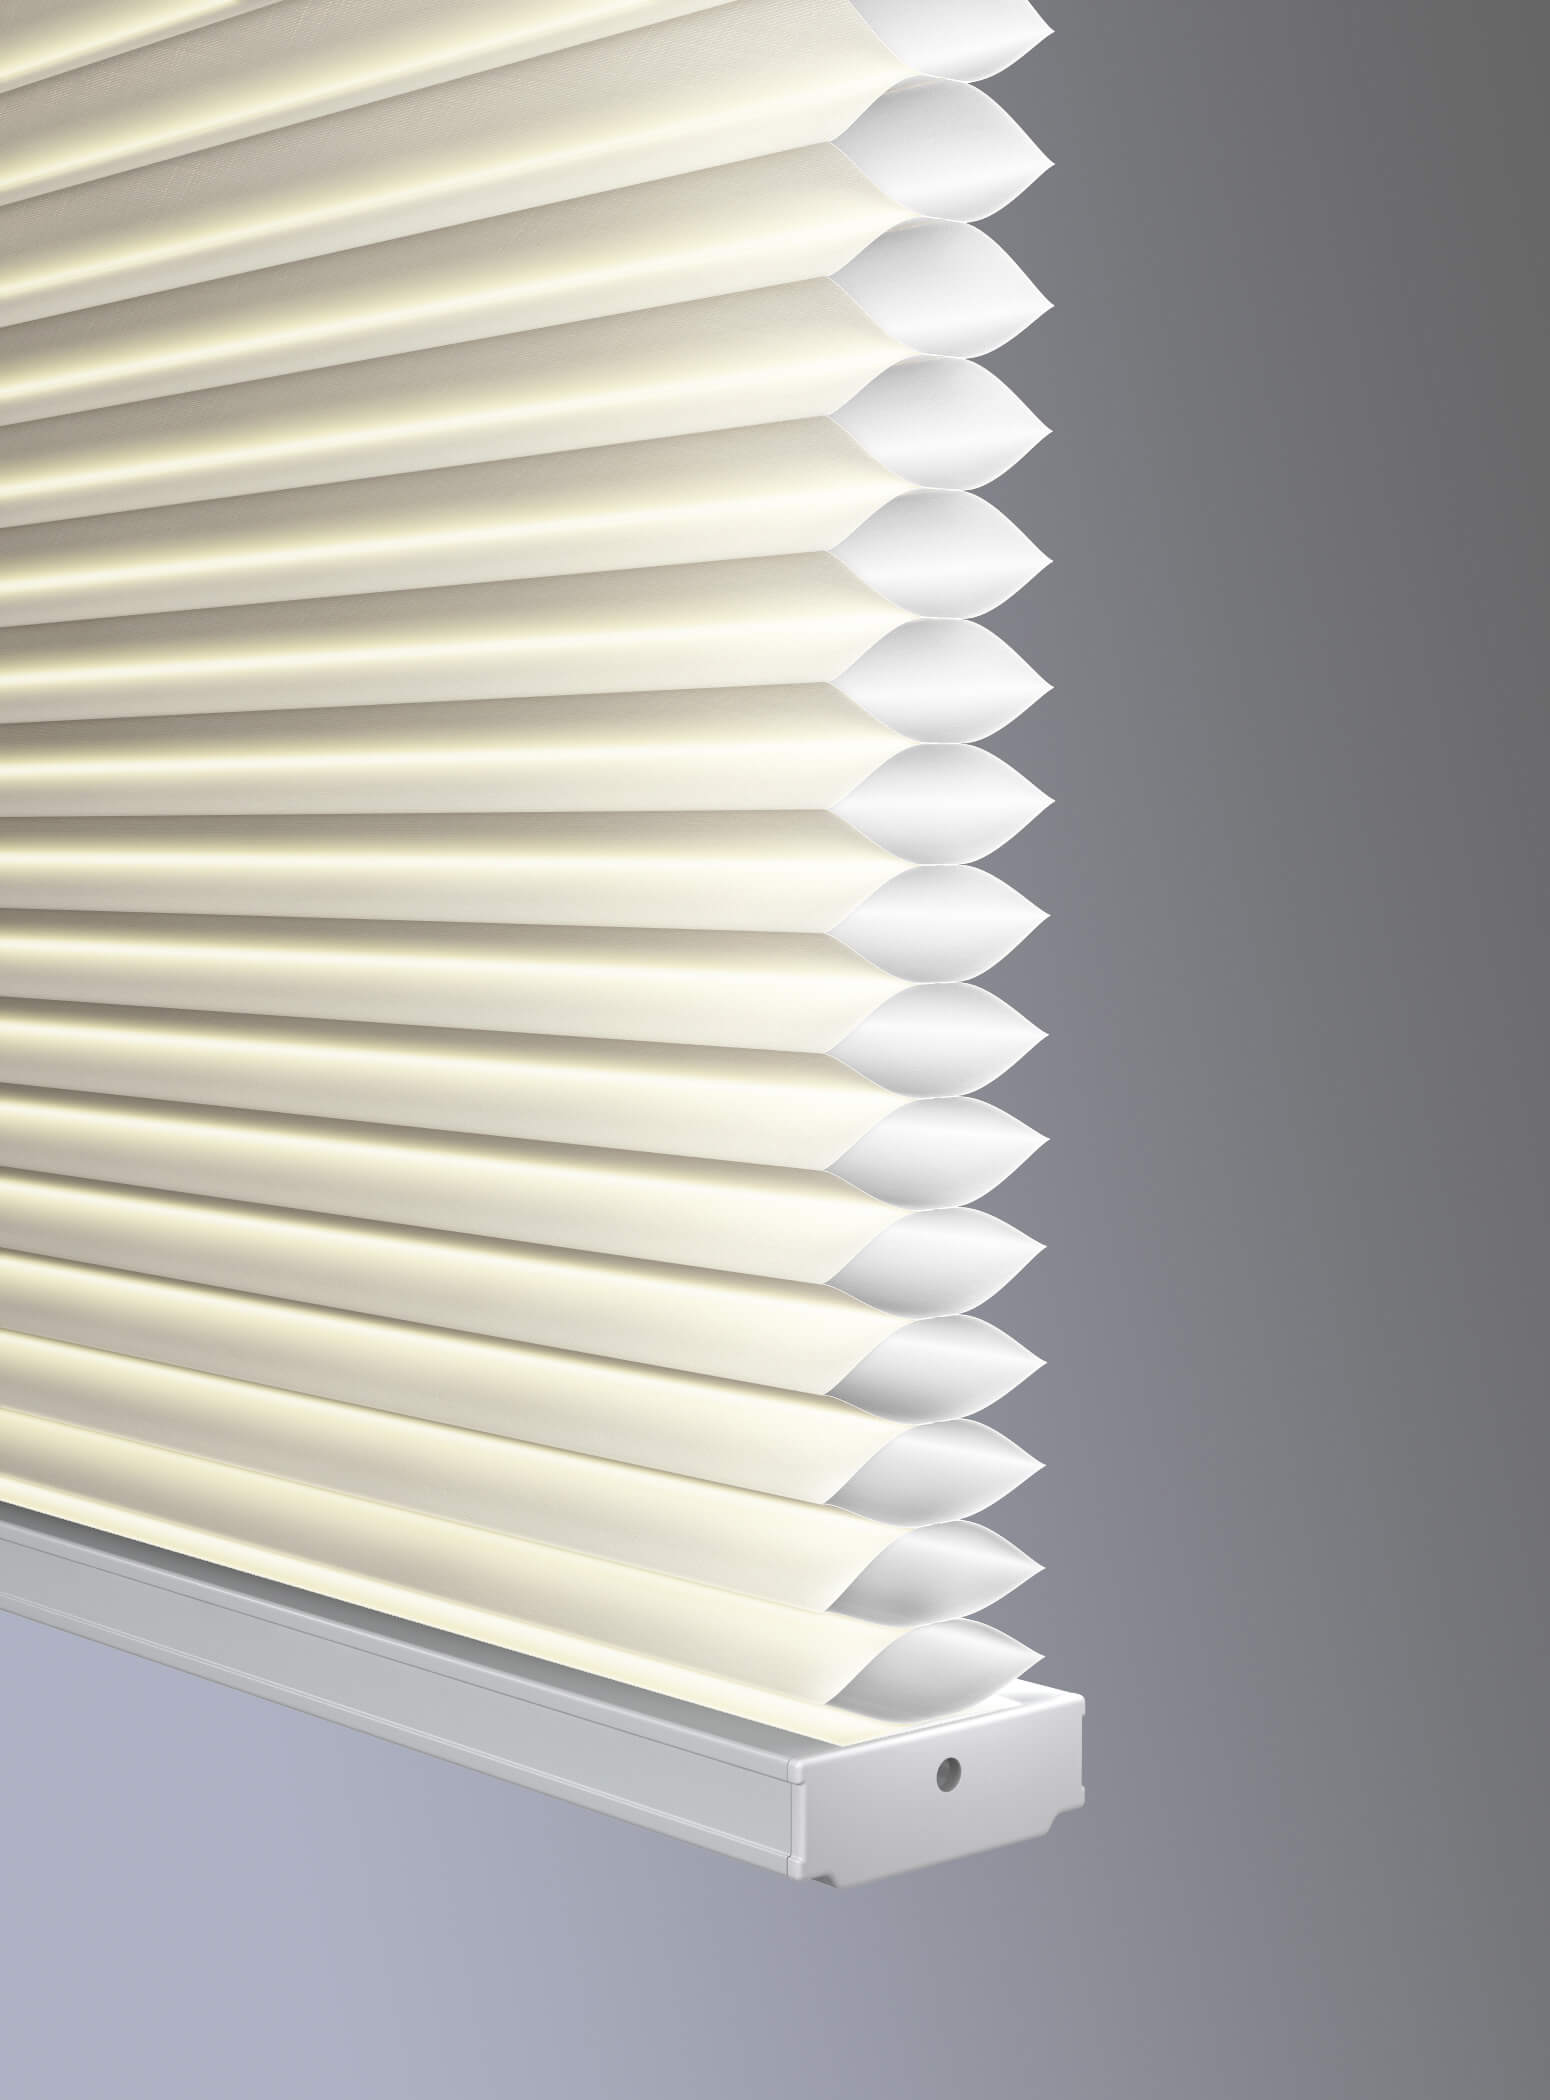 Cellular Blinds And Shades Window Honey Comb Blinds